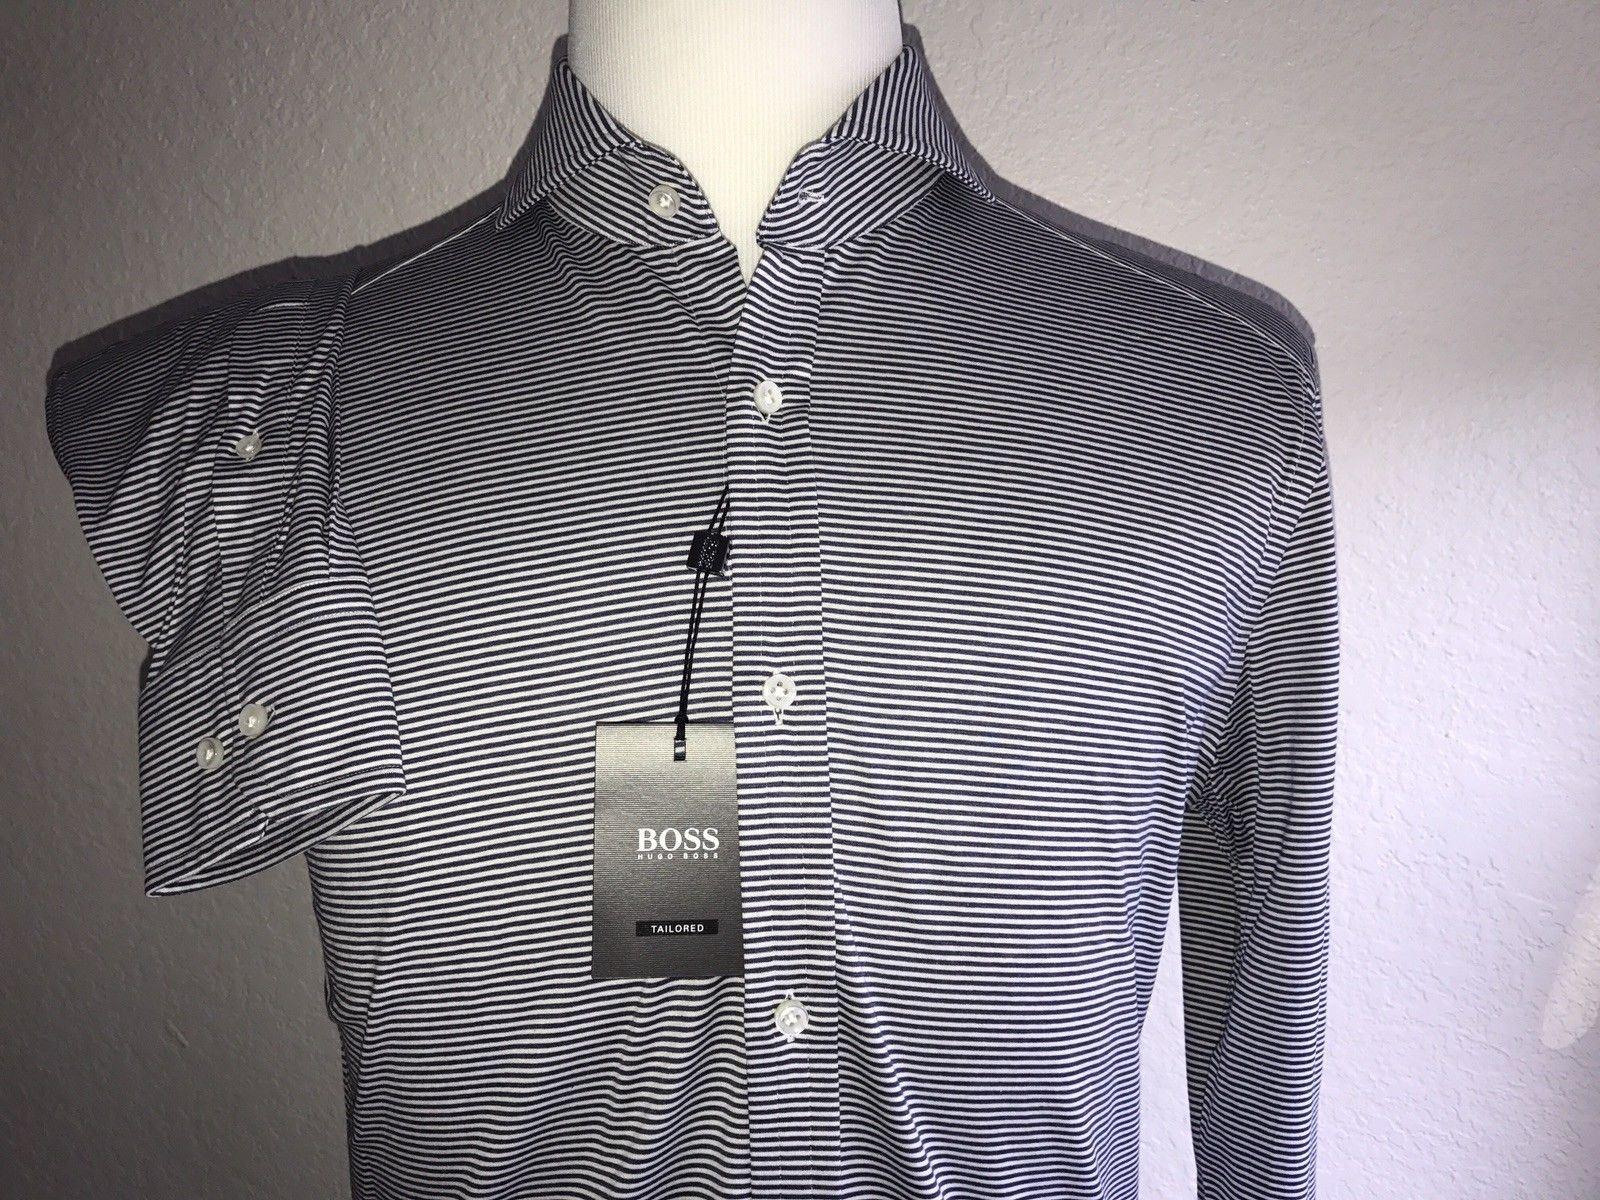 NWT $295 Hugo Boss Mens T-Swan  Slim Fit Tailored Navy Dress Shirt Size 37 /14.5